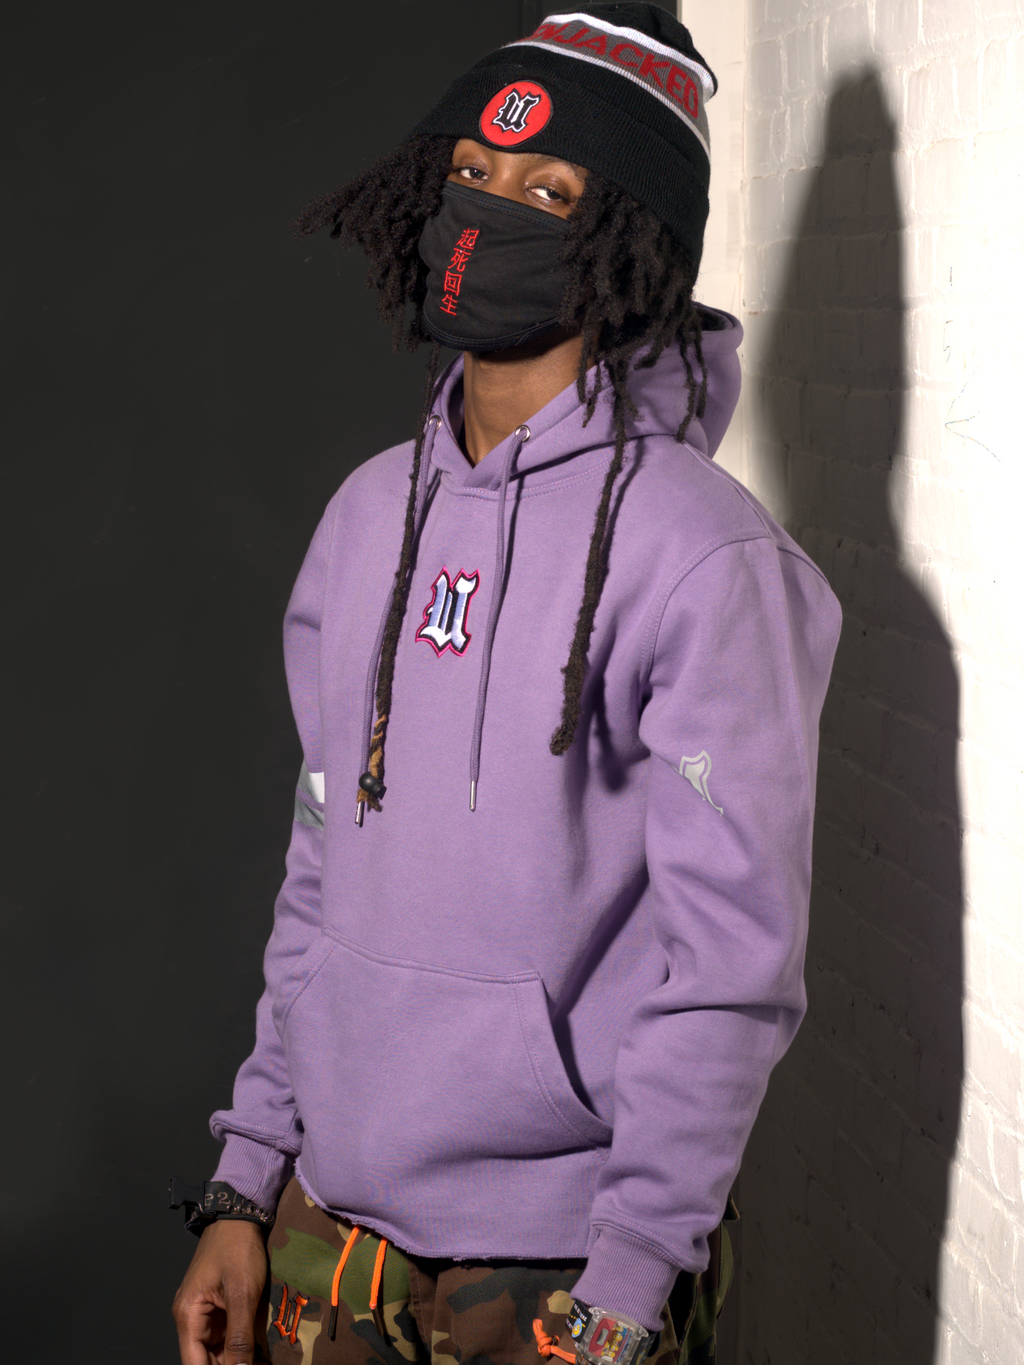 Model Wearing UBJ Beannie & DCDCT Lilac Hoodie